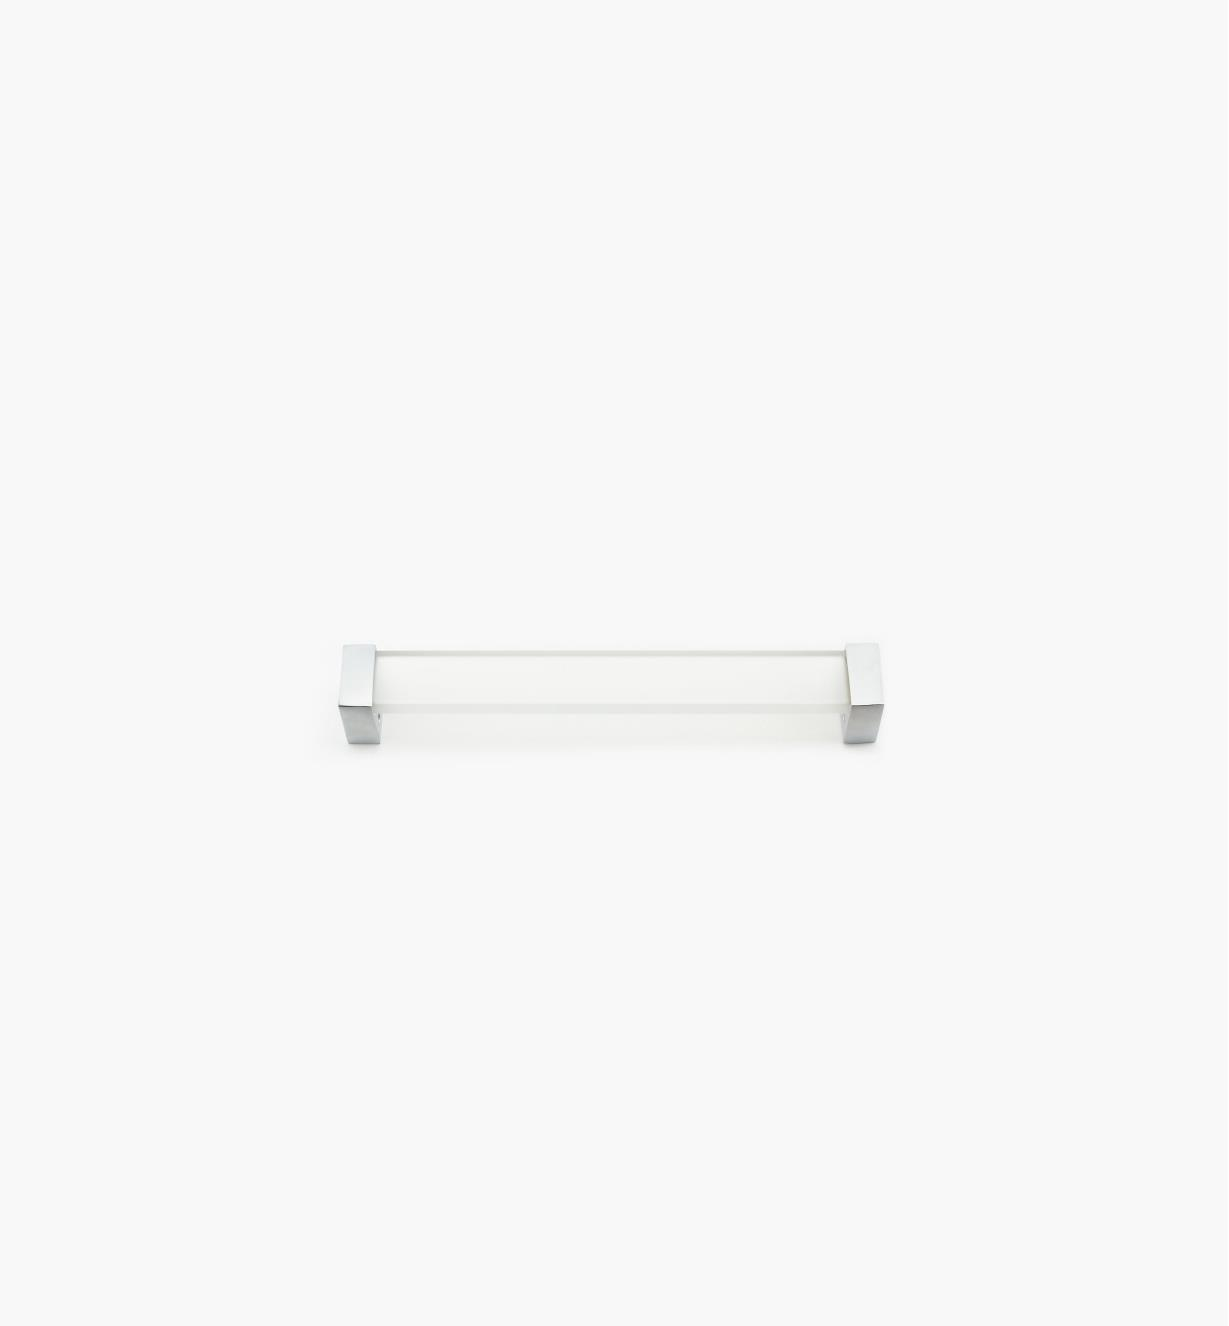 01W0964 - Madrid Hardware – 160mm Handle